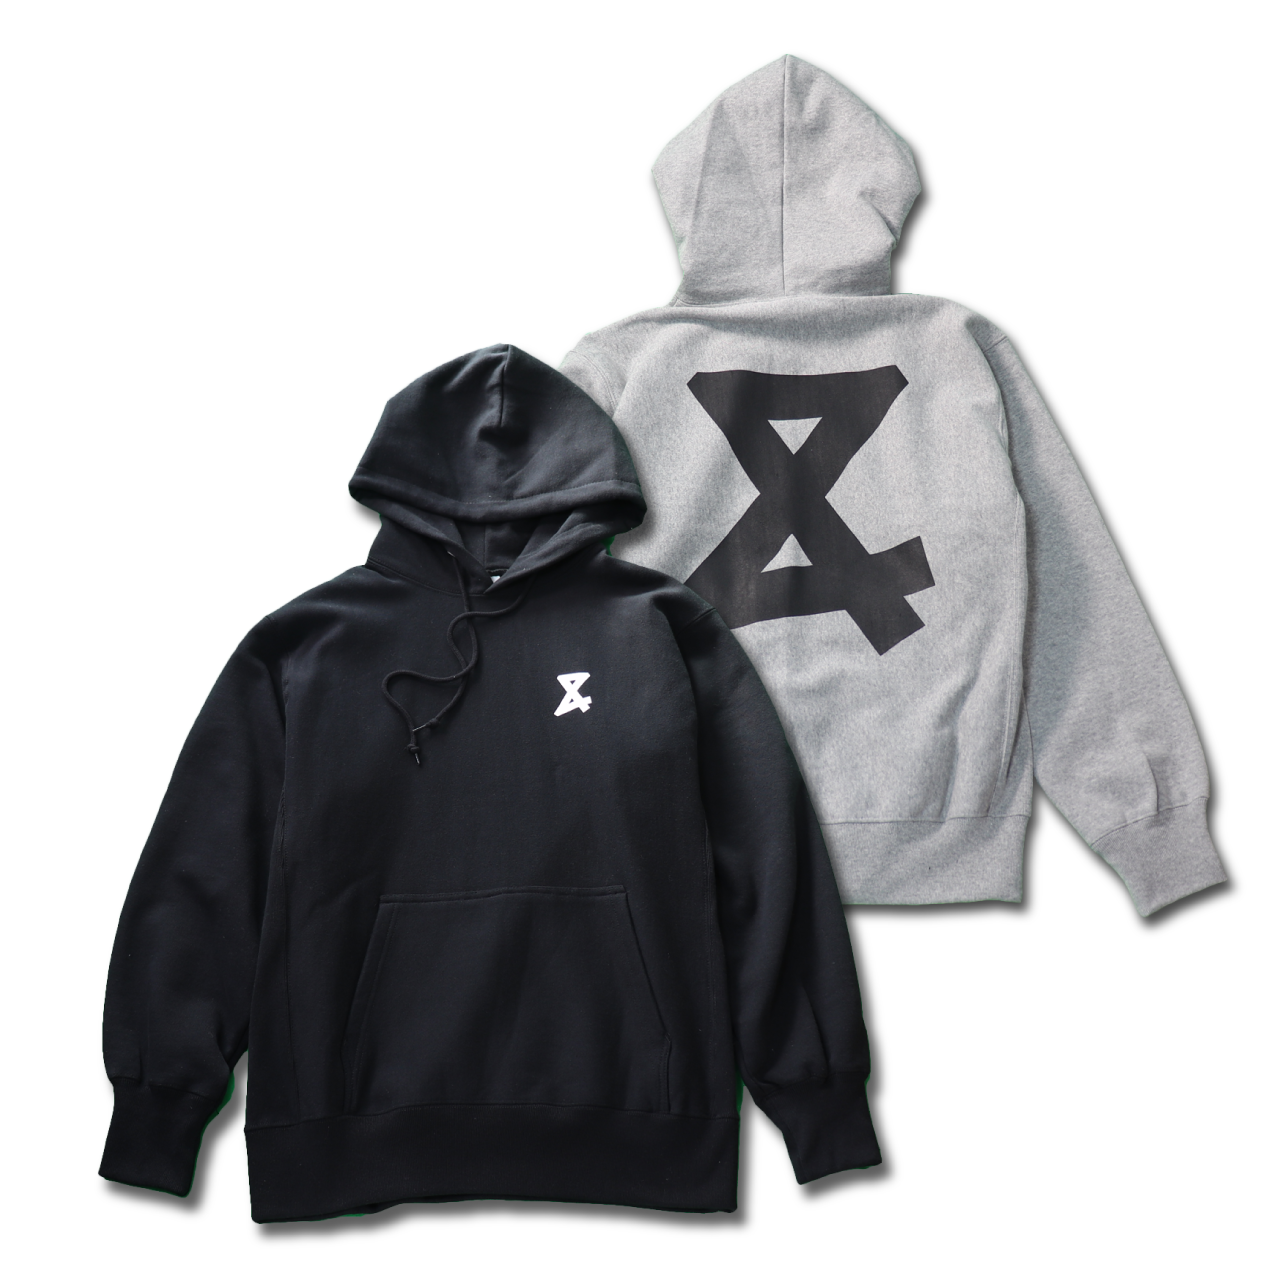 AND Pullover Hoodie